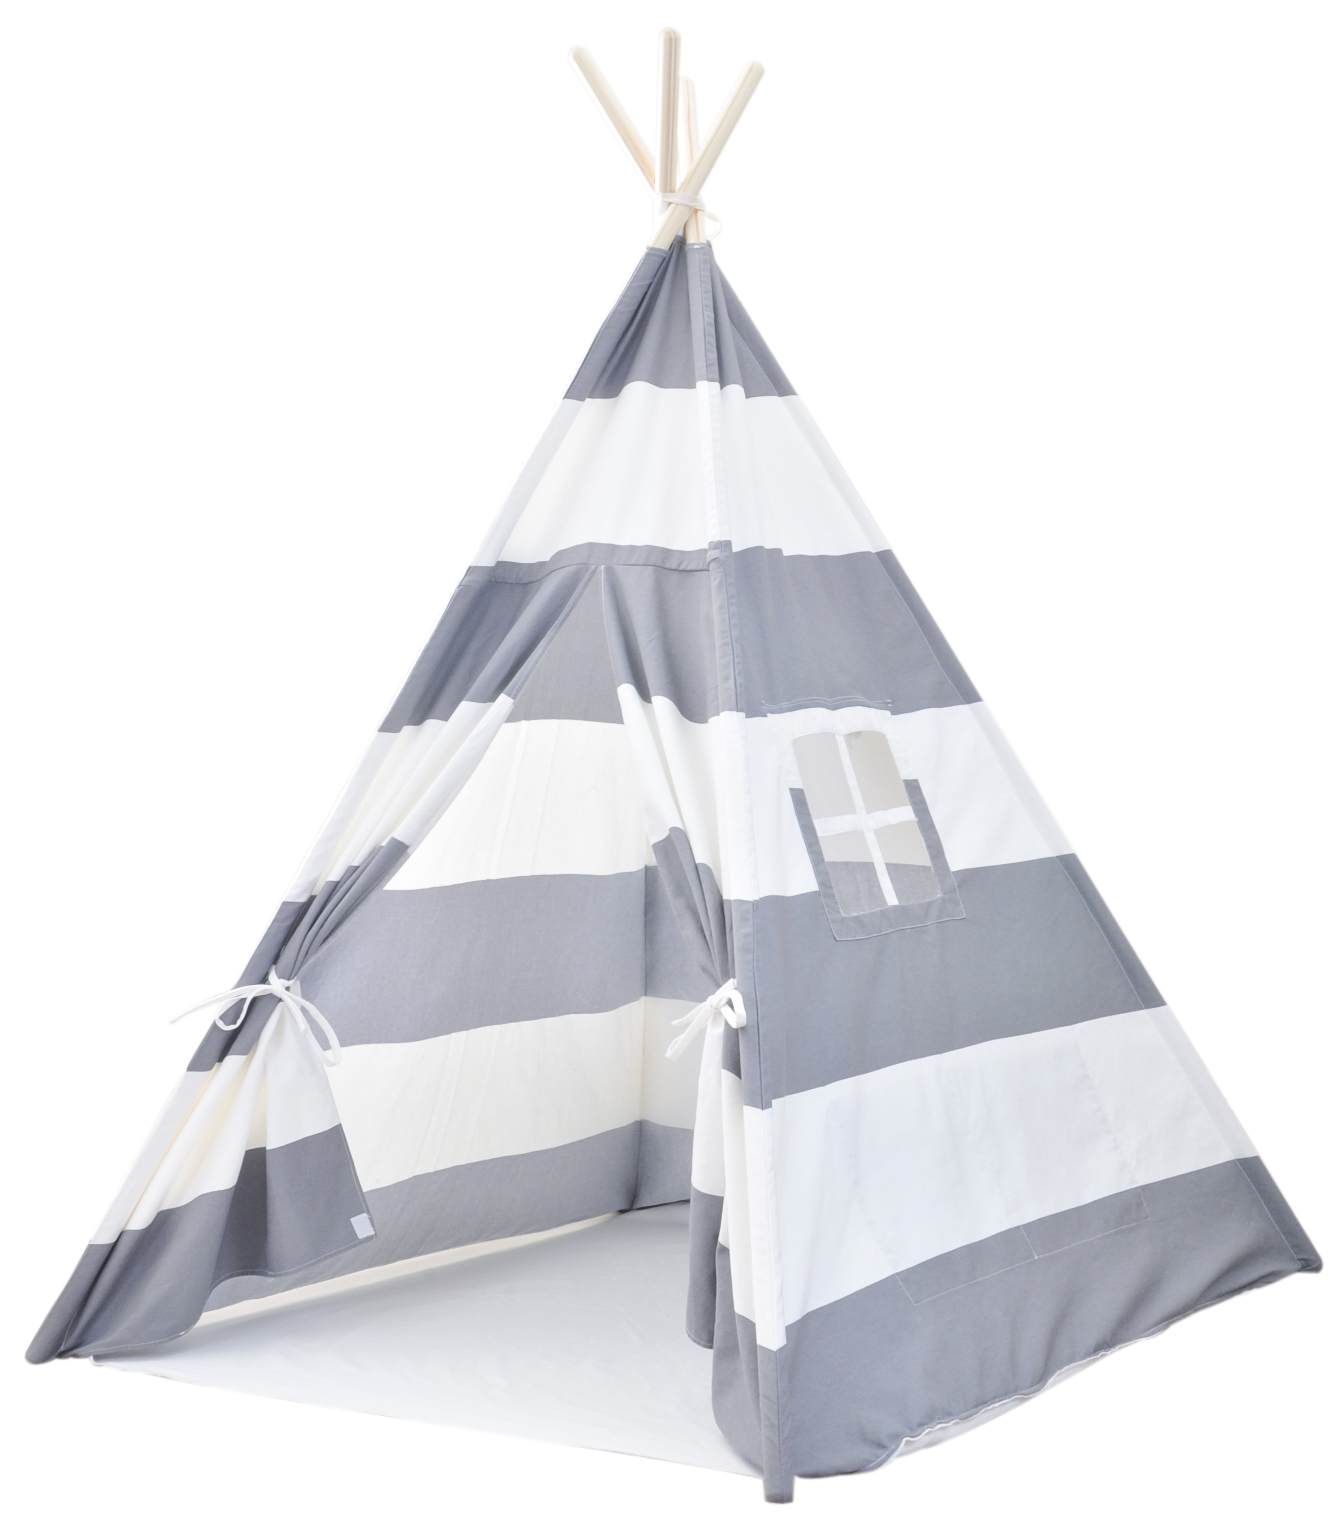 A Mustard Seed Toys Always Buy e Give e Canvas Teepee Tent